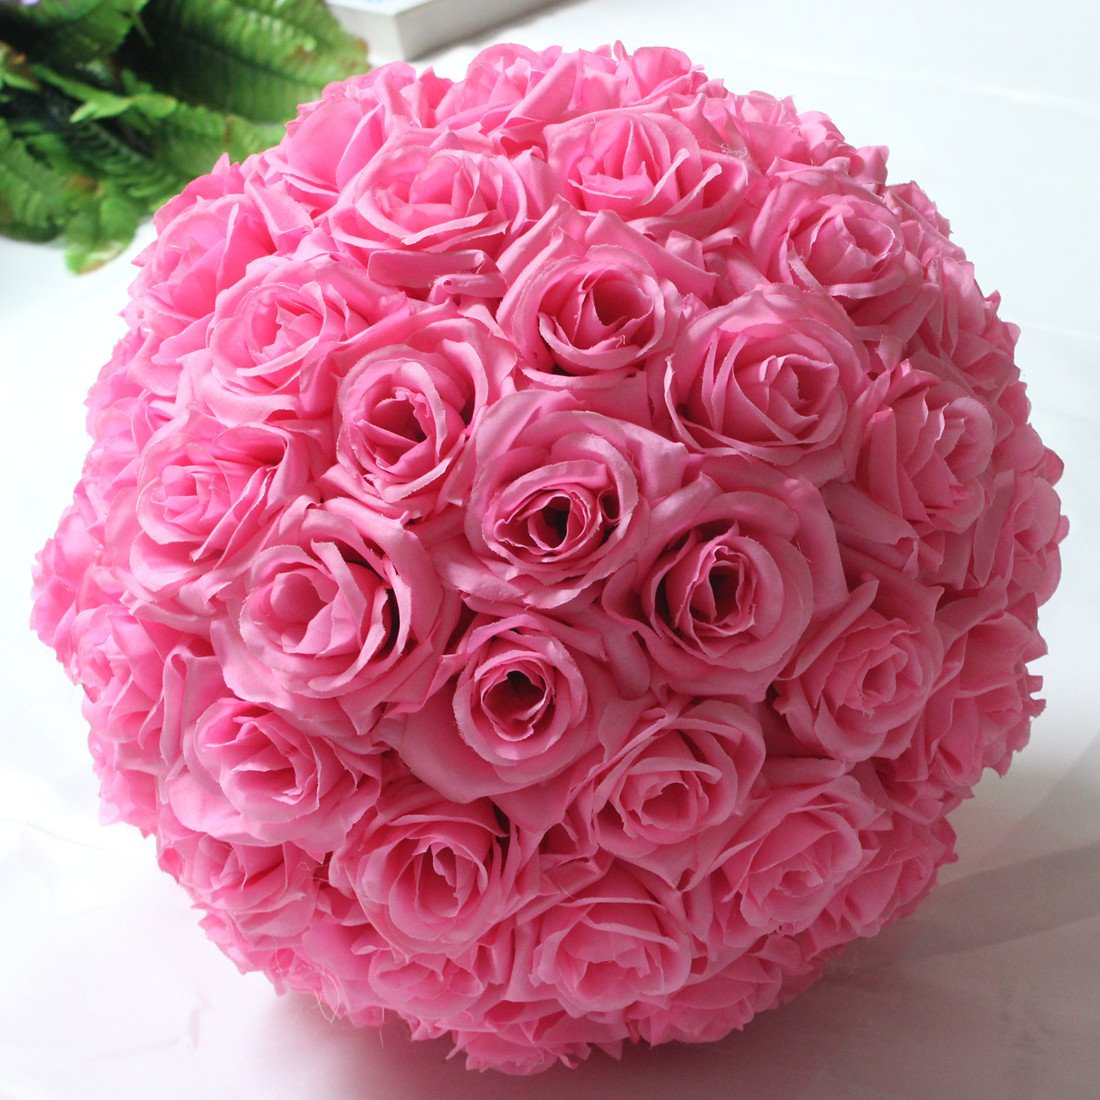 Amazon.com: Hanging Decorative Flower Ball Centerpieces Silk Rose ...